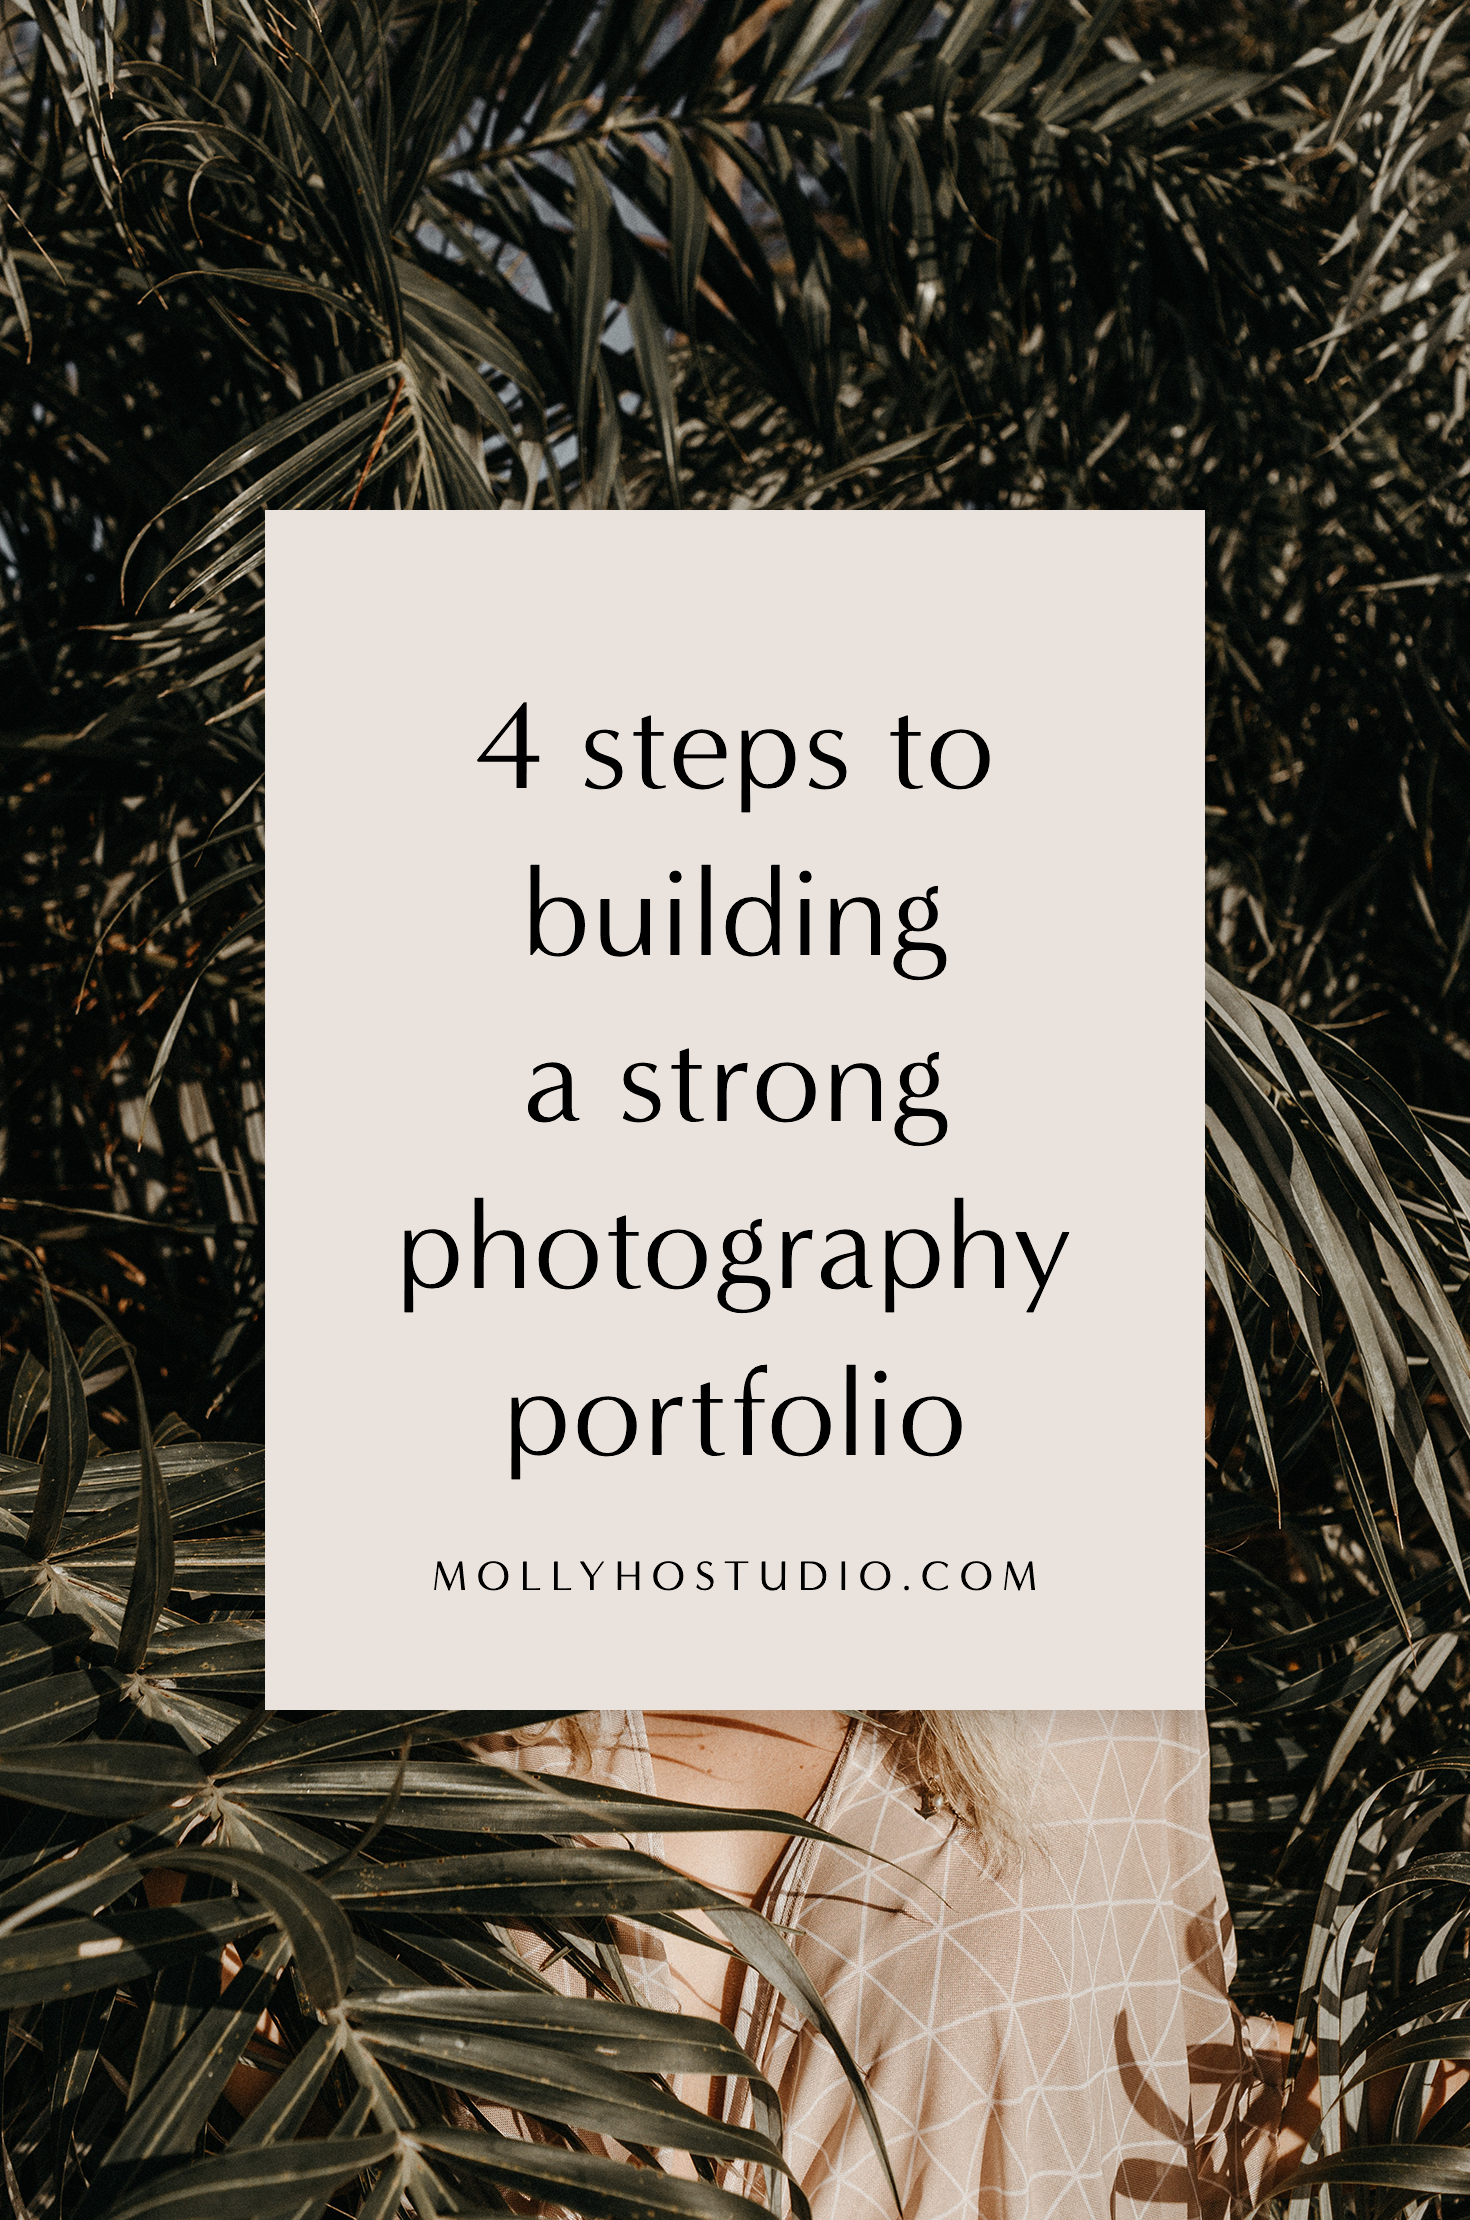 How To Build A Photography Portfolio When You Don't Have Clients Yet | How To Start A Photography Business | Branding and Marketing Tips for Photographers | Photography Business Plan | Building A Personal Brand | Growing Your Photography Business | How To Set Yourself Apart In An Oversaturated Market | Getting More Photography Clients | How To Book More Clients | Molly Ho Studio